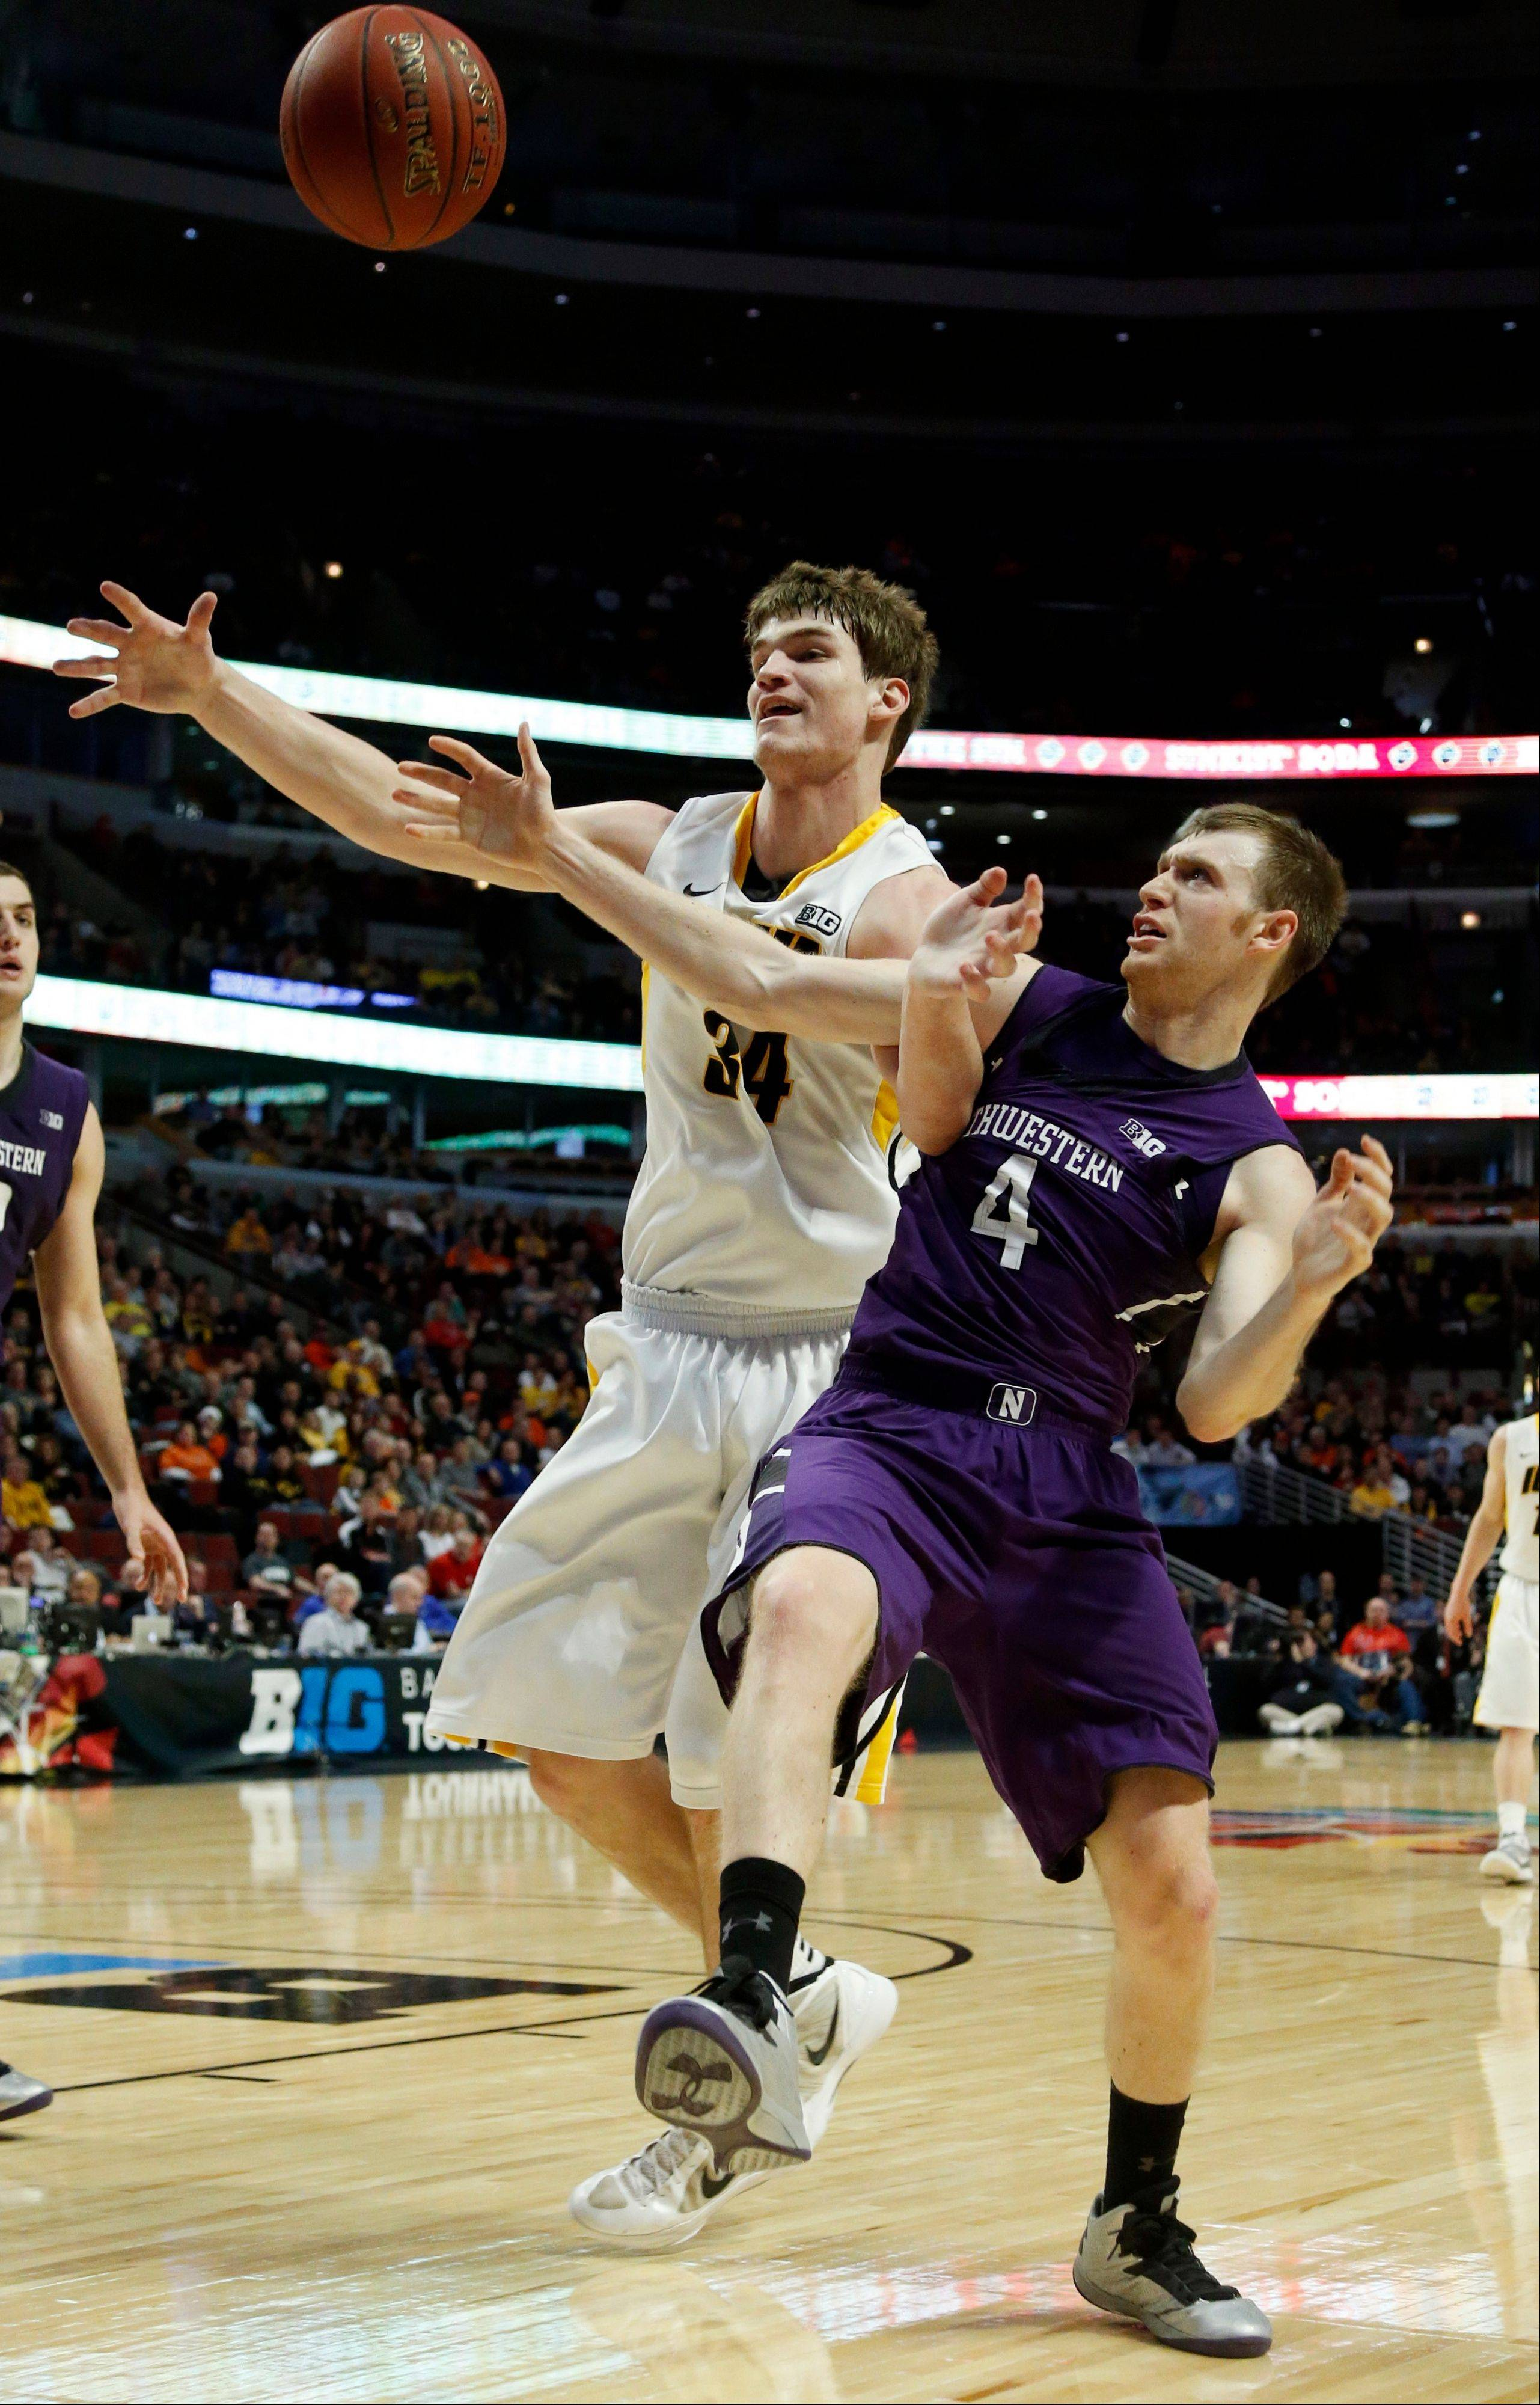 Iowa's Adam Woodbury (34) and Northwestern's Alex Marcotullio (4) battle for a loose ball.